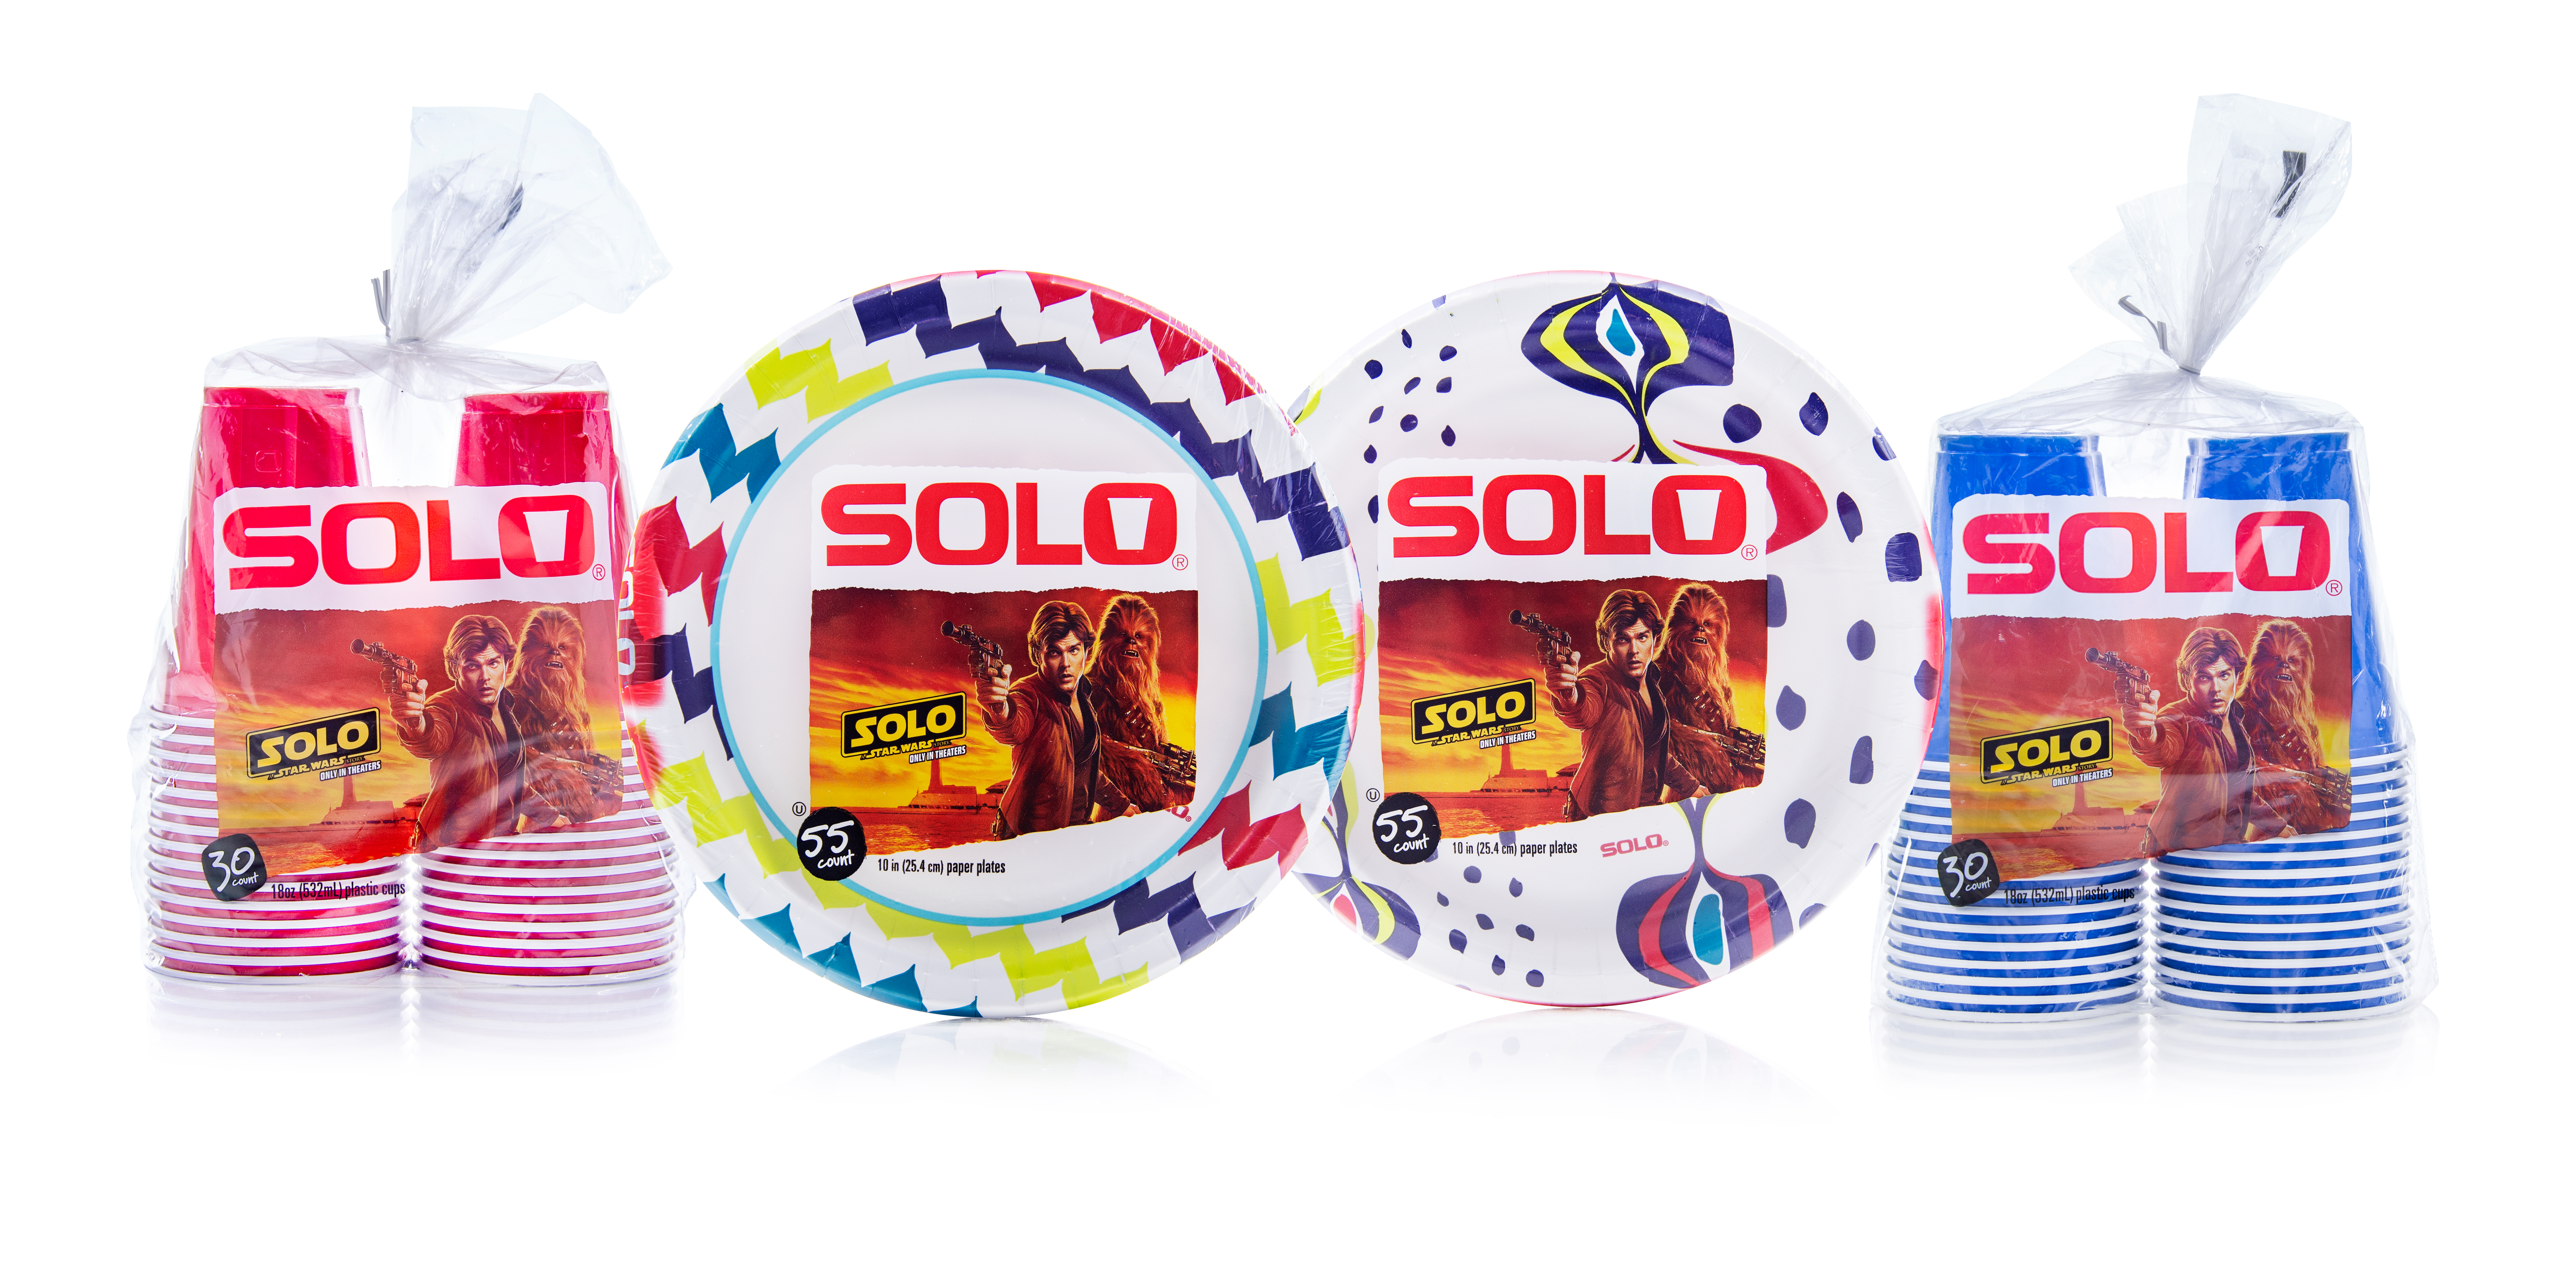 Star Wars: Han Solo Teams Up With Plastic Cup Maker Solo